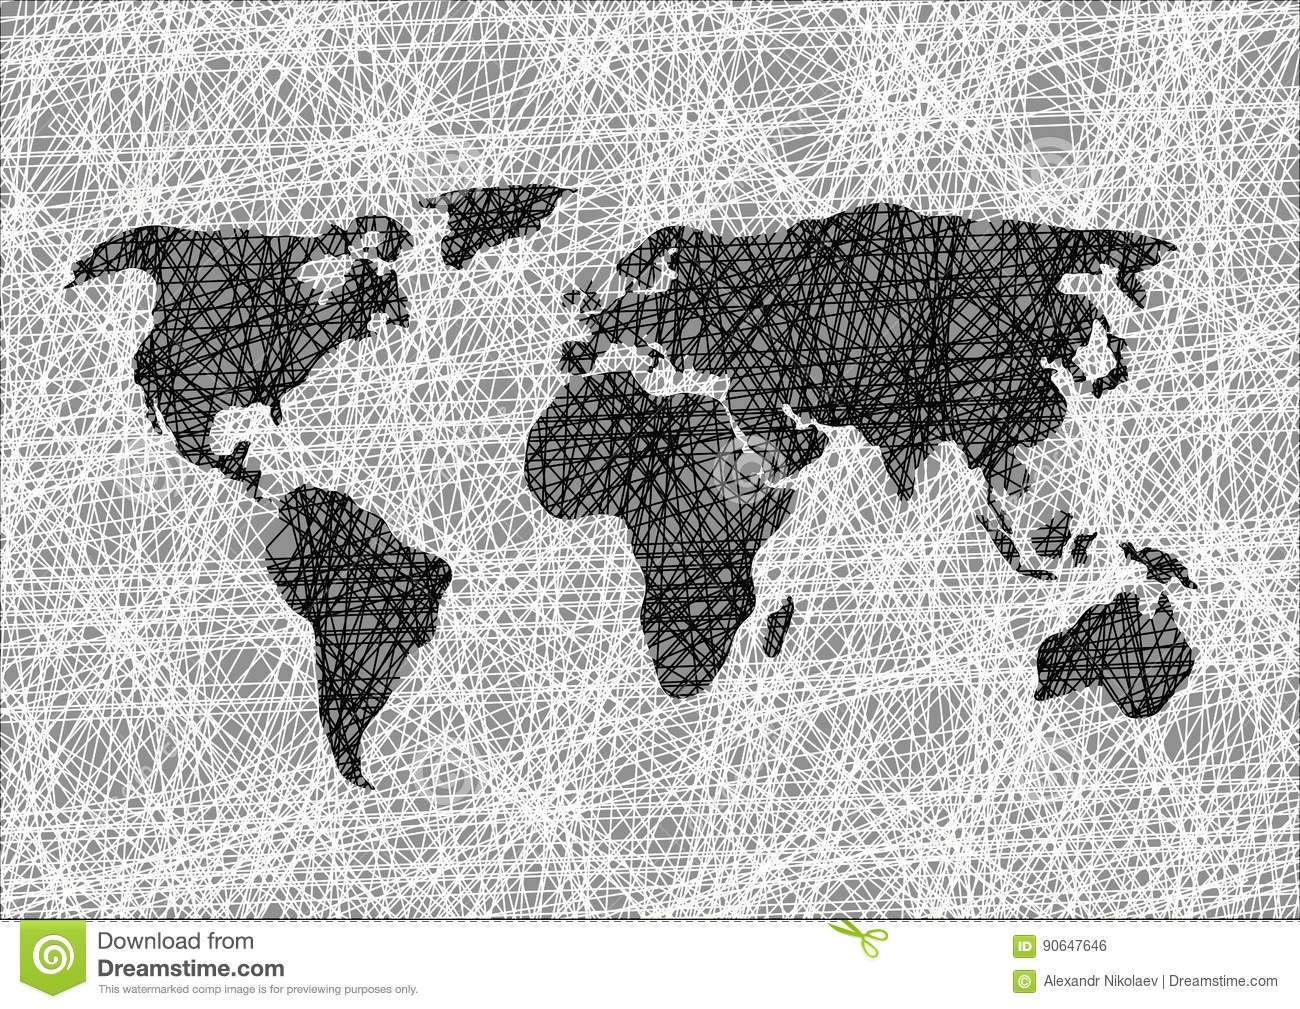 Pencil drawing sketch world map vector illustration stock vector download comp gumiabroncs Gallery